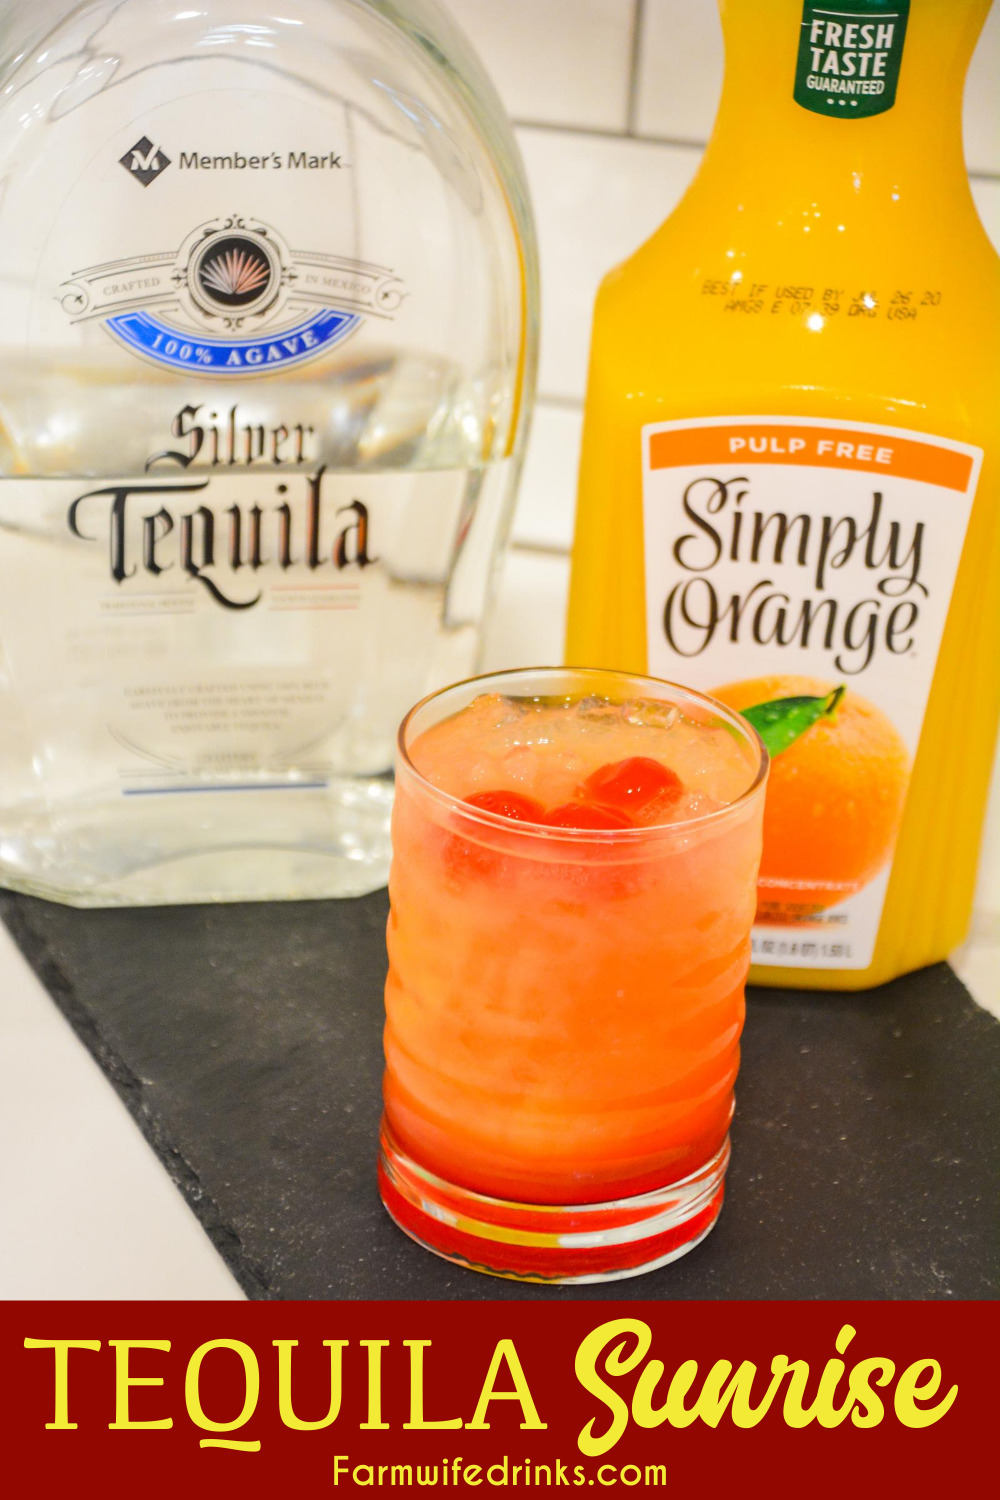 Tequila Sunrise is an orange juice and tequila cocktail made smooth with the addition of cherries and grenadine made famous in the 70s by Mick Jagger.